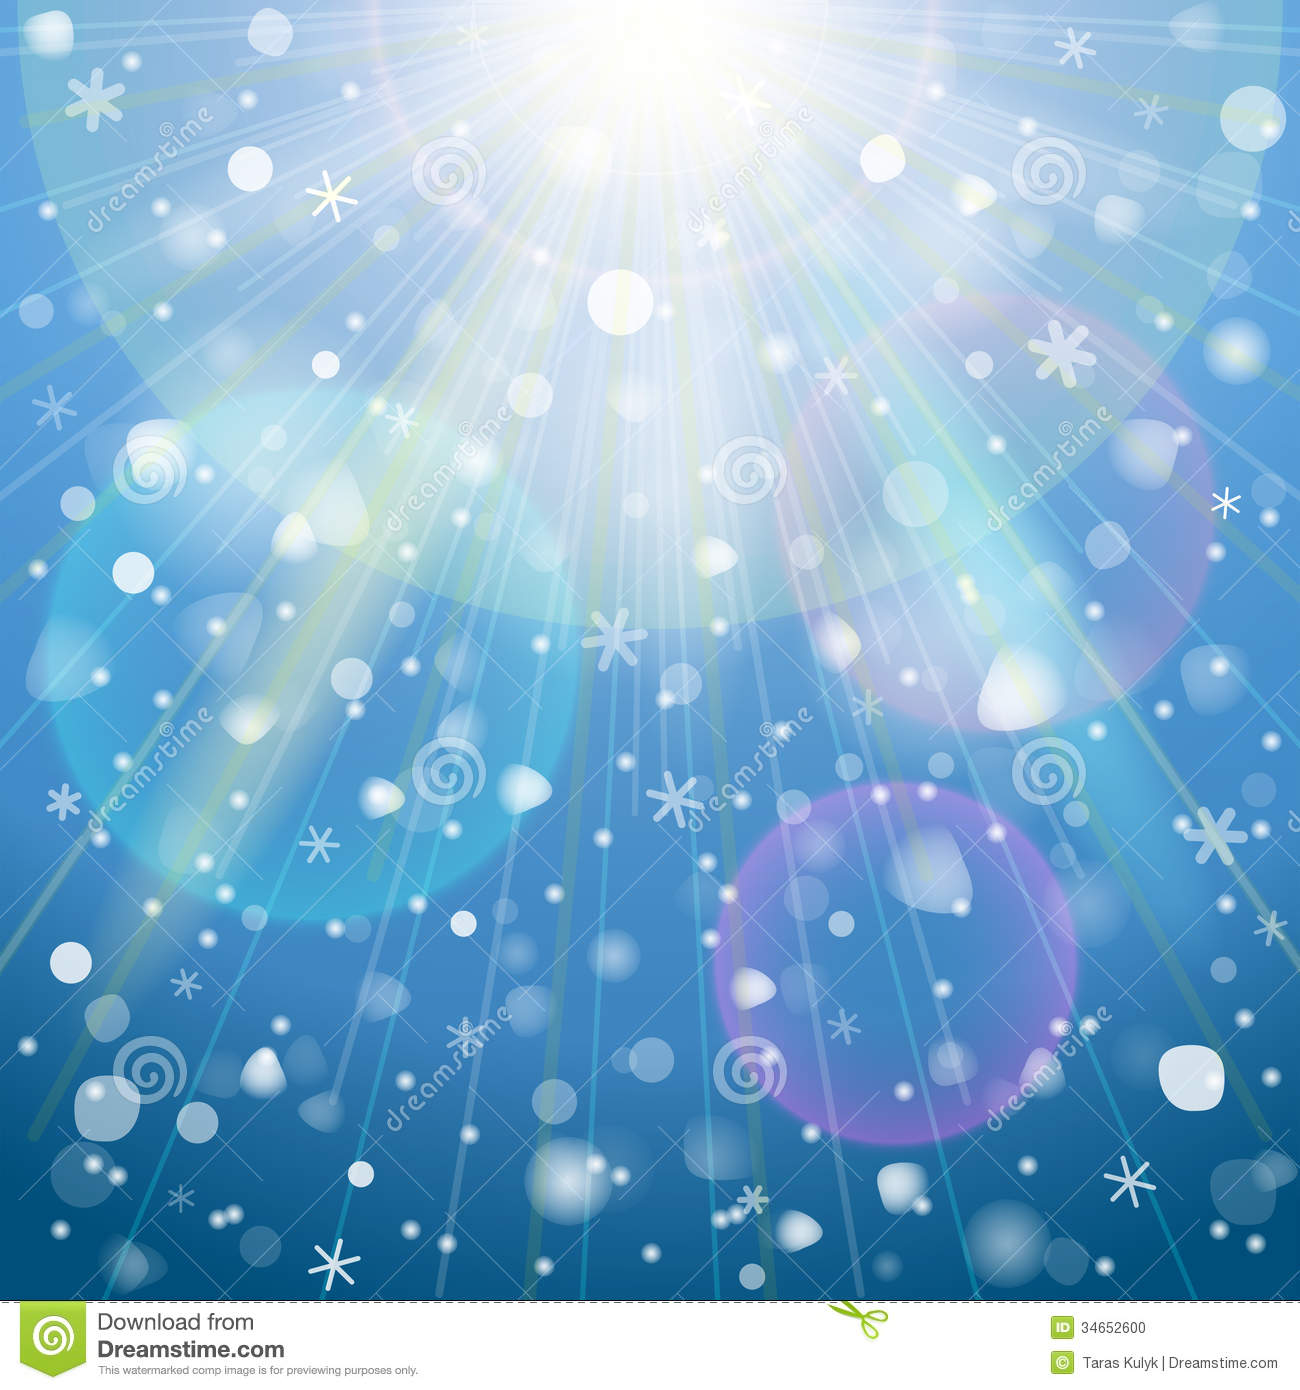 Eps 10 background for christmas new years day winter holiday